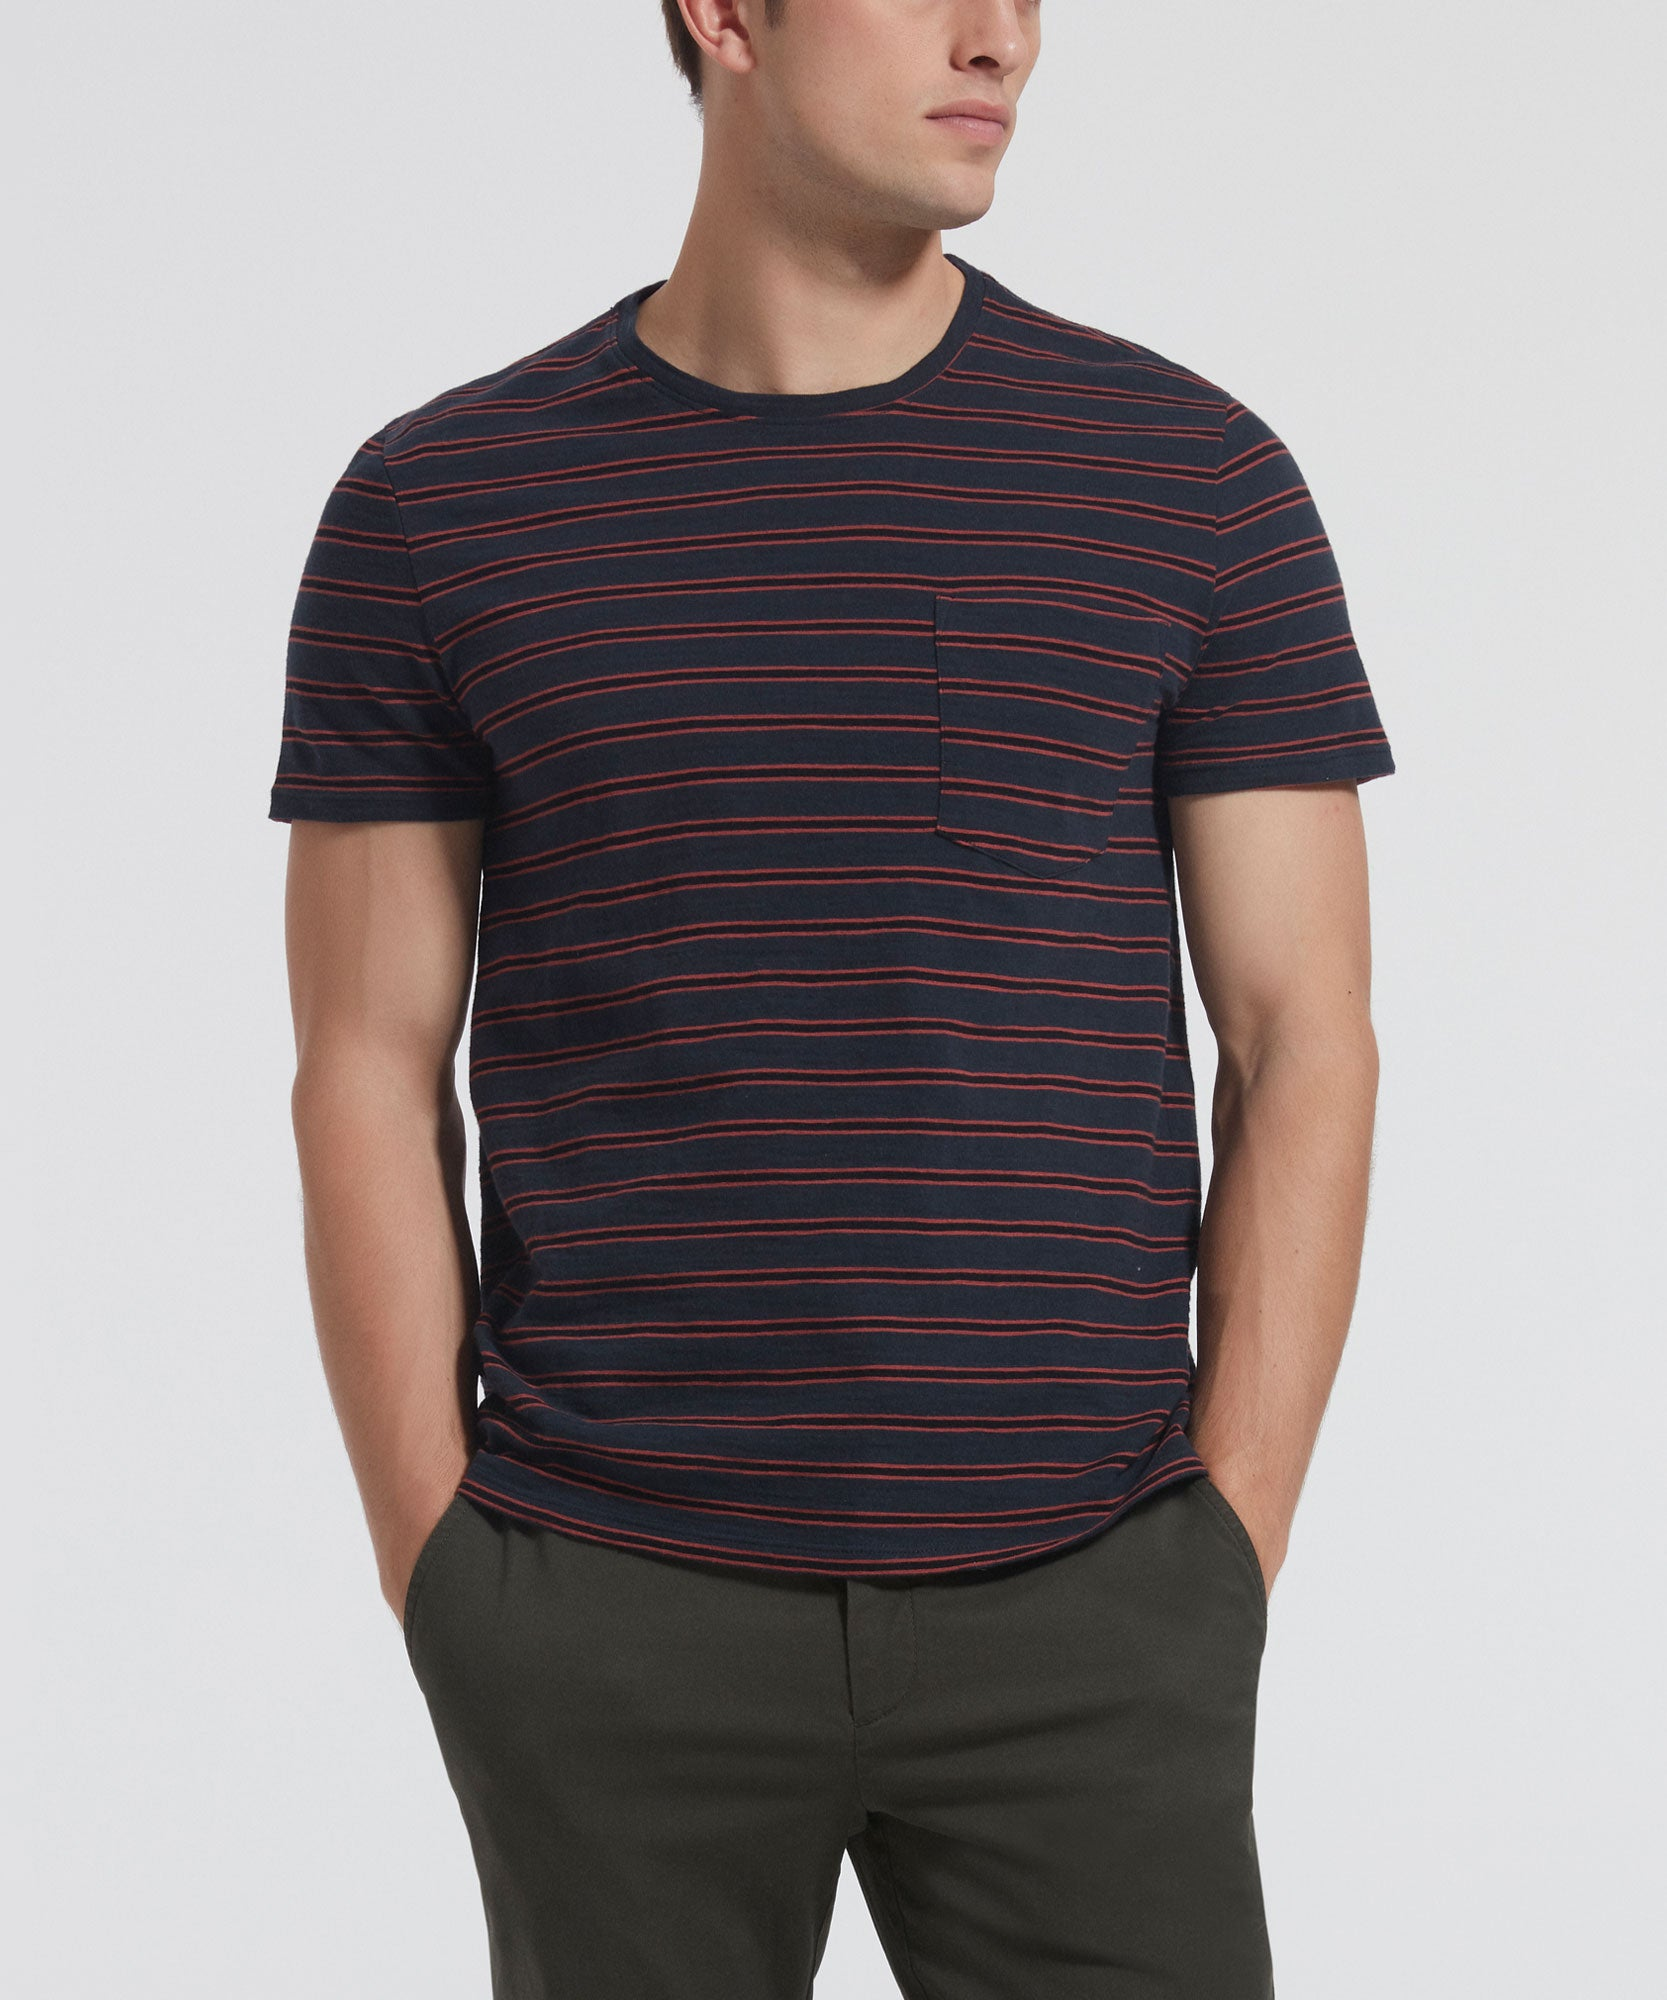 Pavement and Cedar Double Striped Crew Neck Pocket Tee - Men's Luxe Tee by ATM Anthony Thomas Melillo